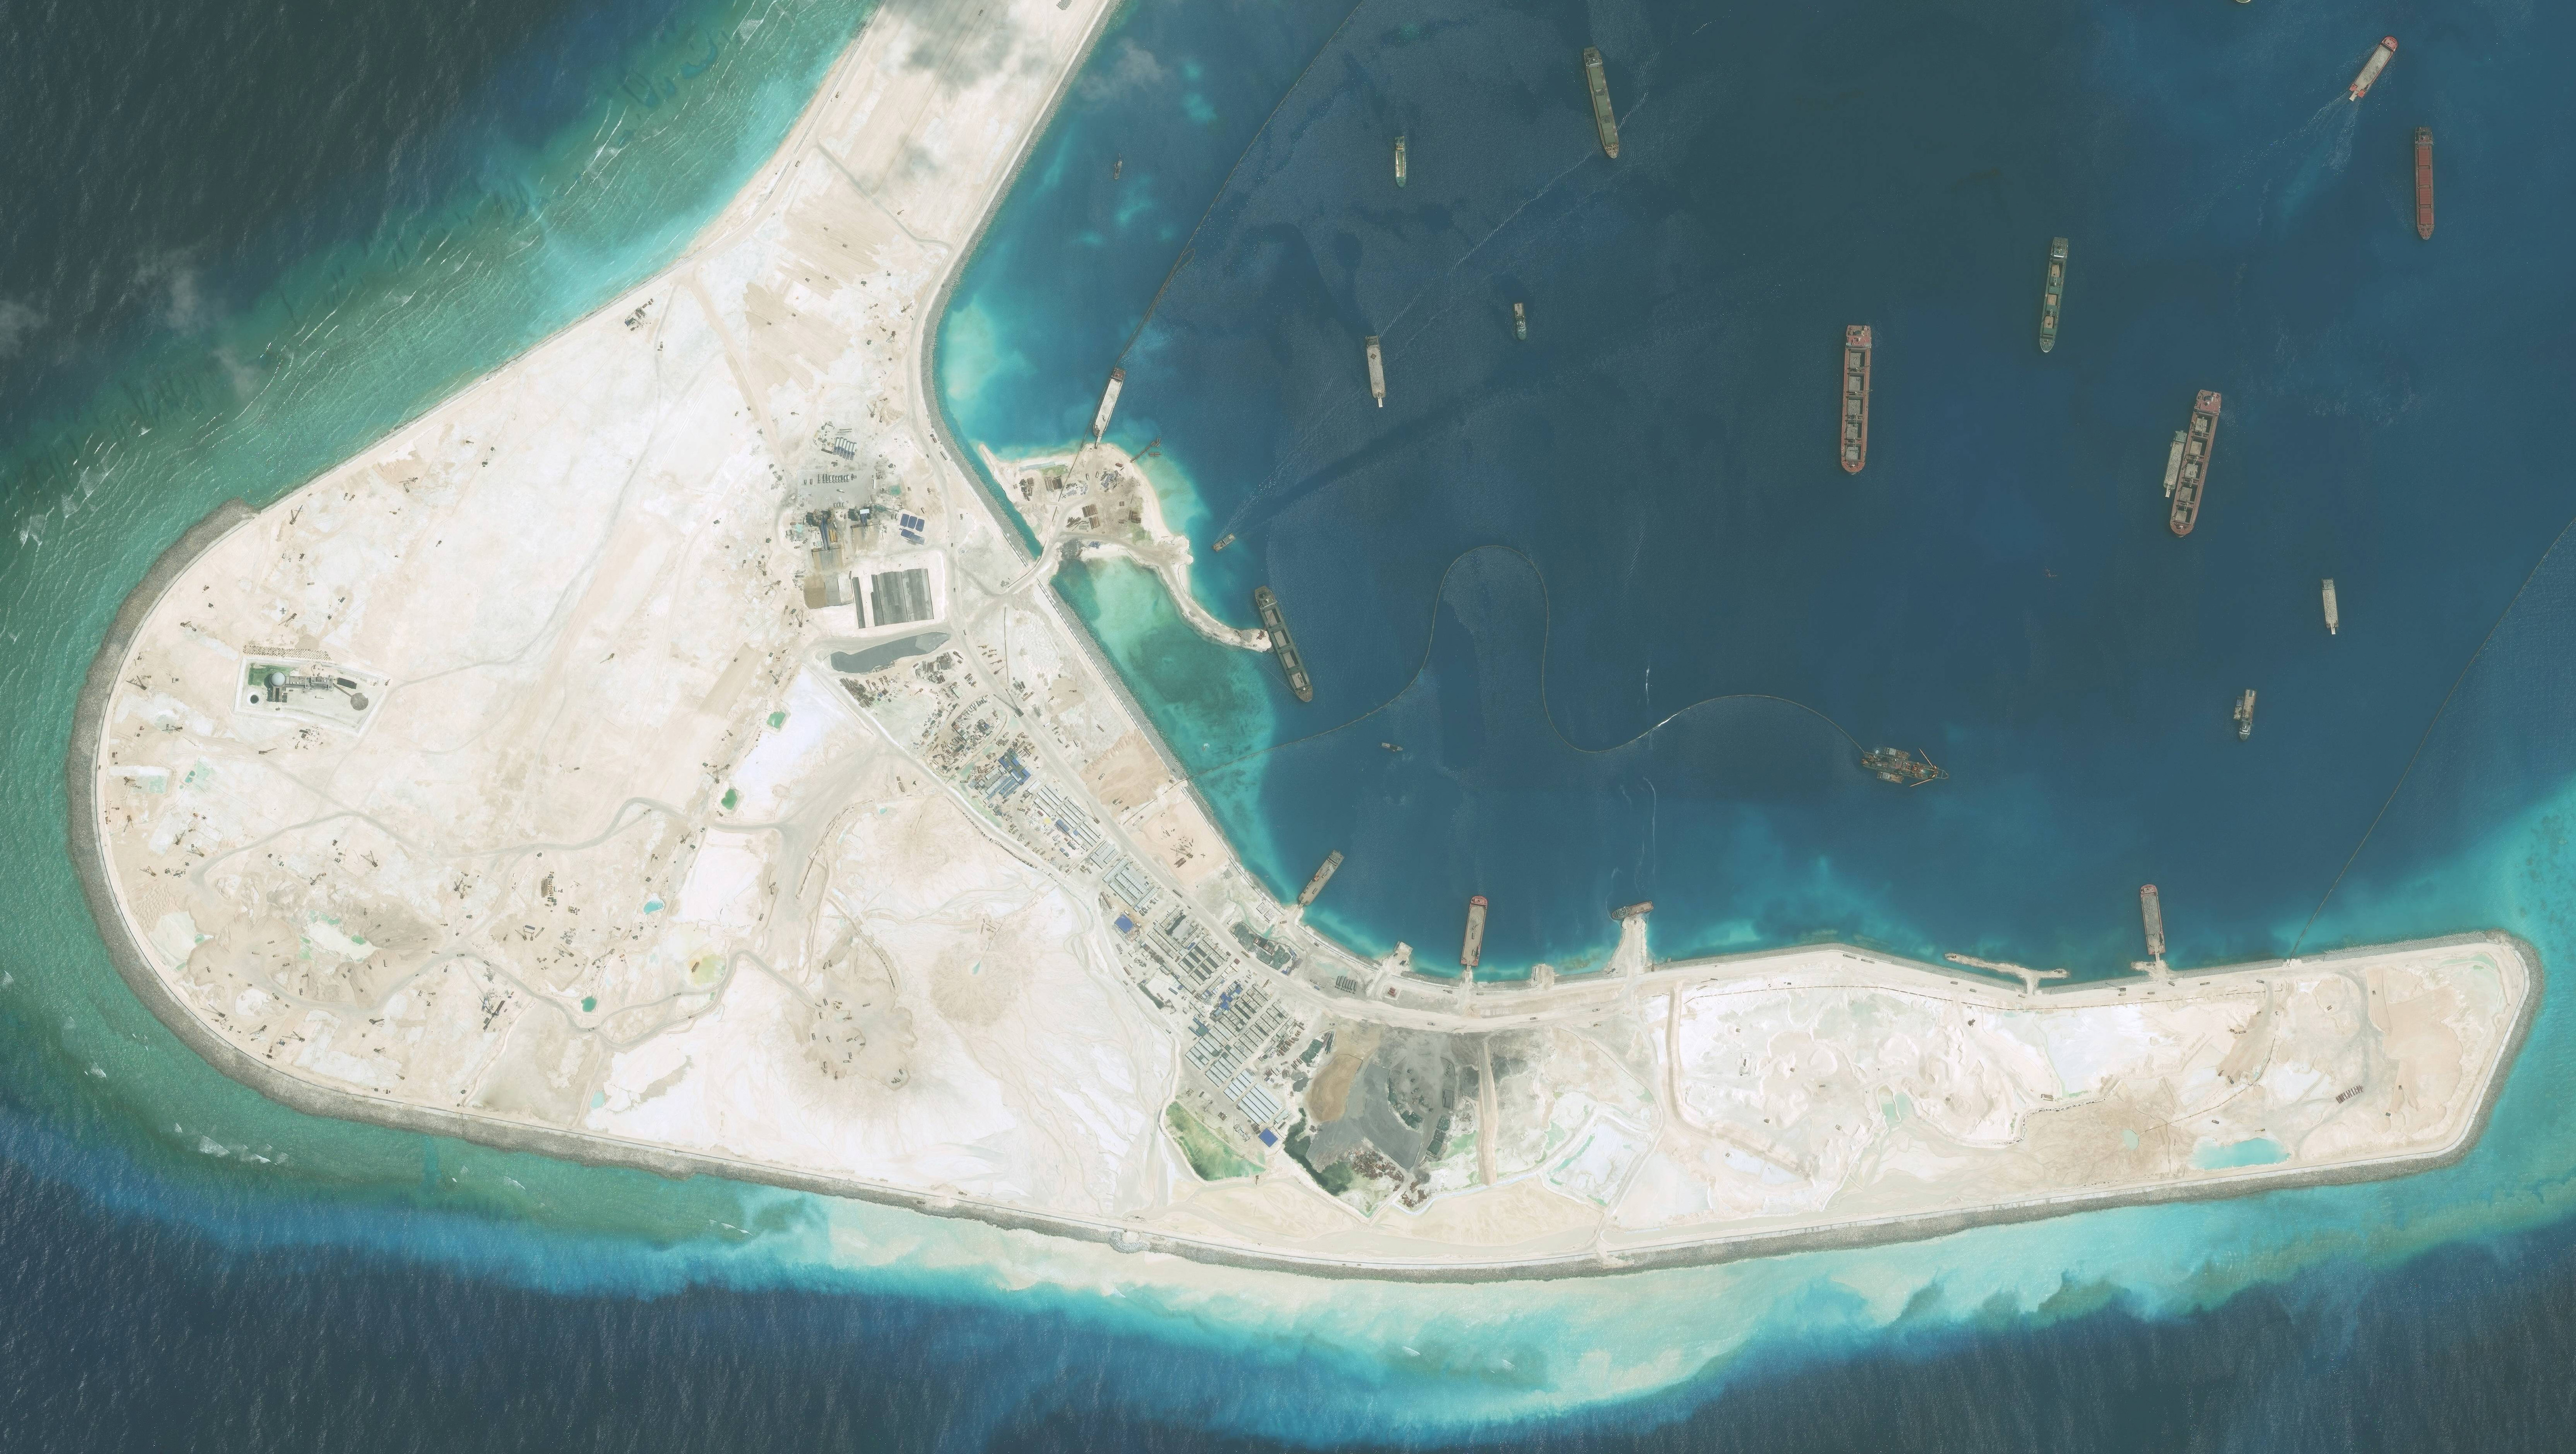 The Subi Reef in the South China Sea, a part of the Spratly Islands group, on Sept. 1, 2015